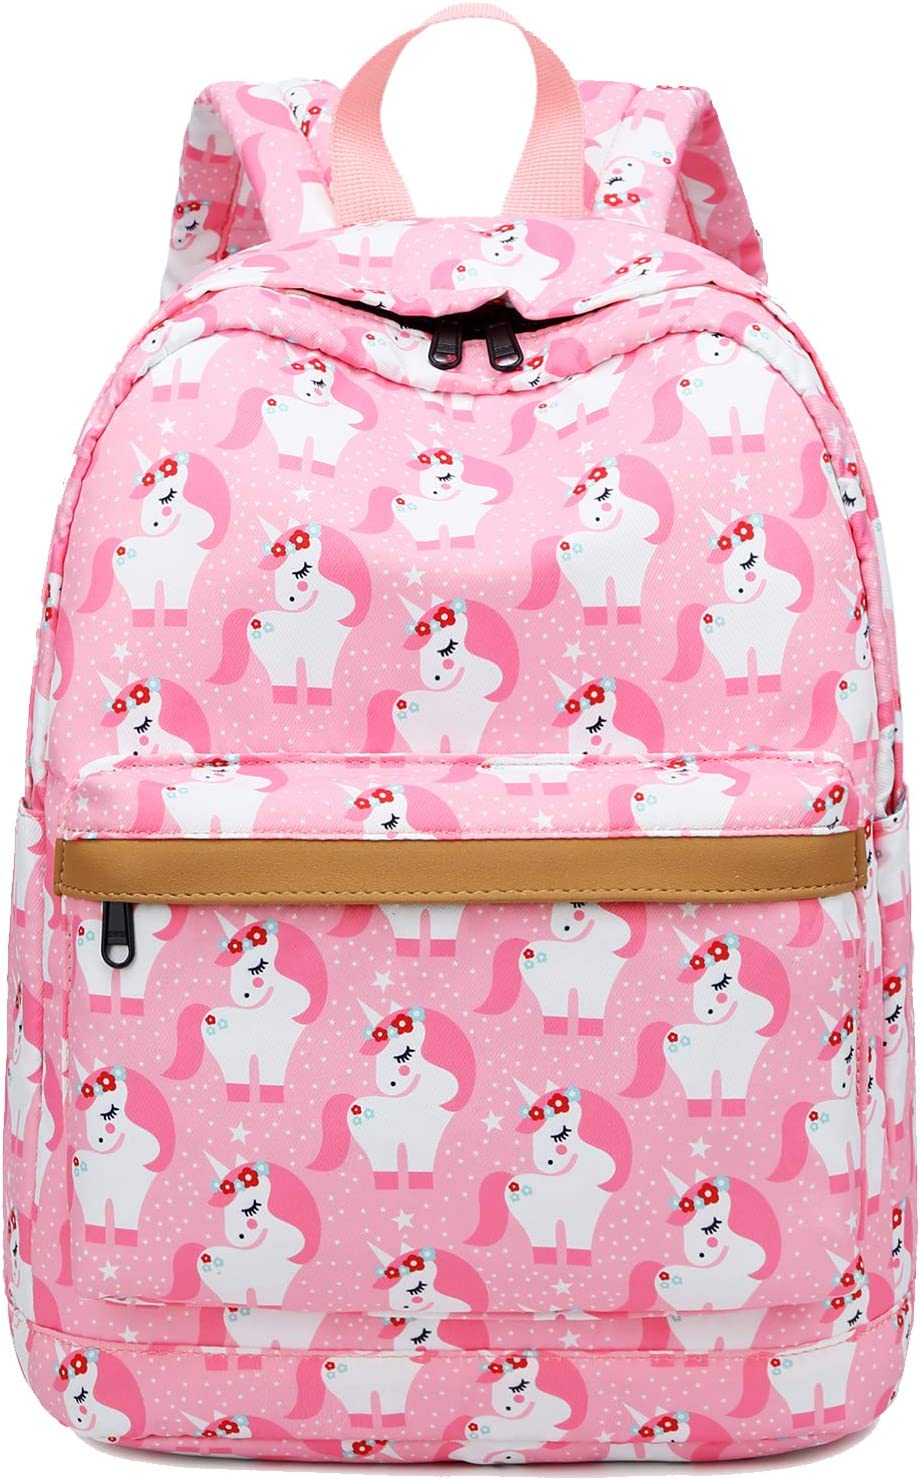 Preschool Backpack for Kids Girls Toddler Backpack Kindergarten School Bookbags (Cute unicorn-Pink)